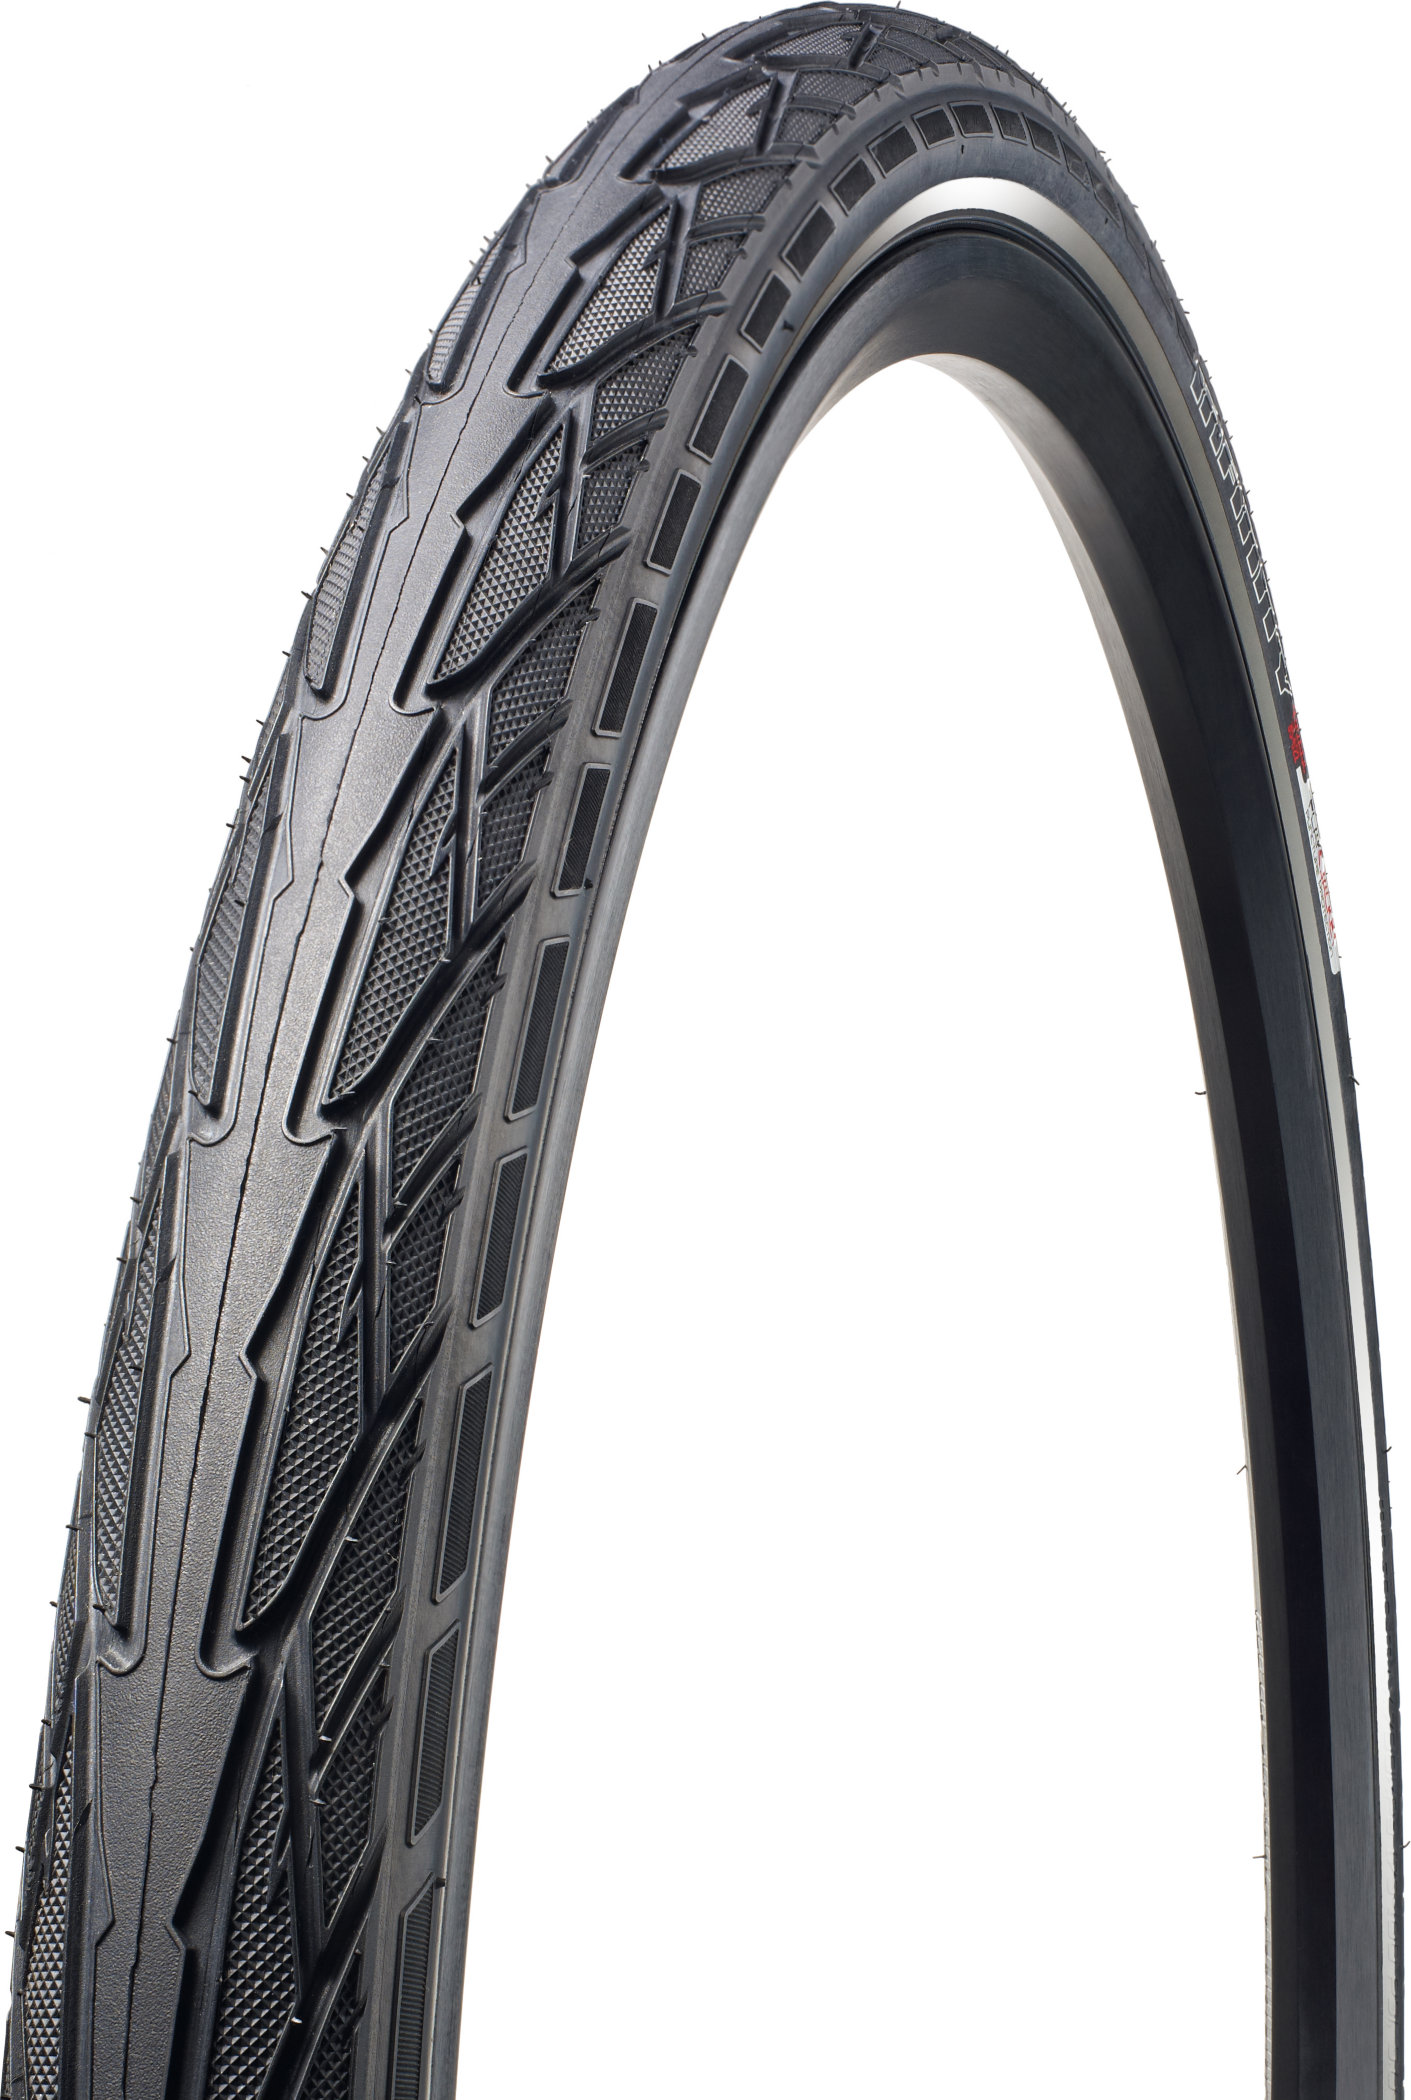 SPECIALIZED INFINITY ARM REFLECT TIRE 26X1.75 - Alpha Bikes